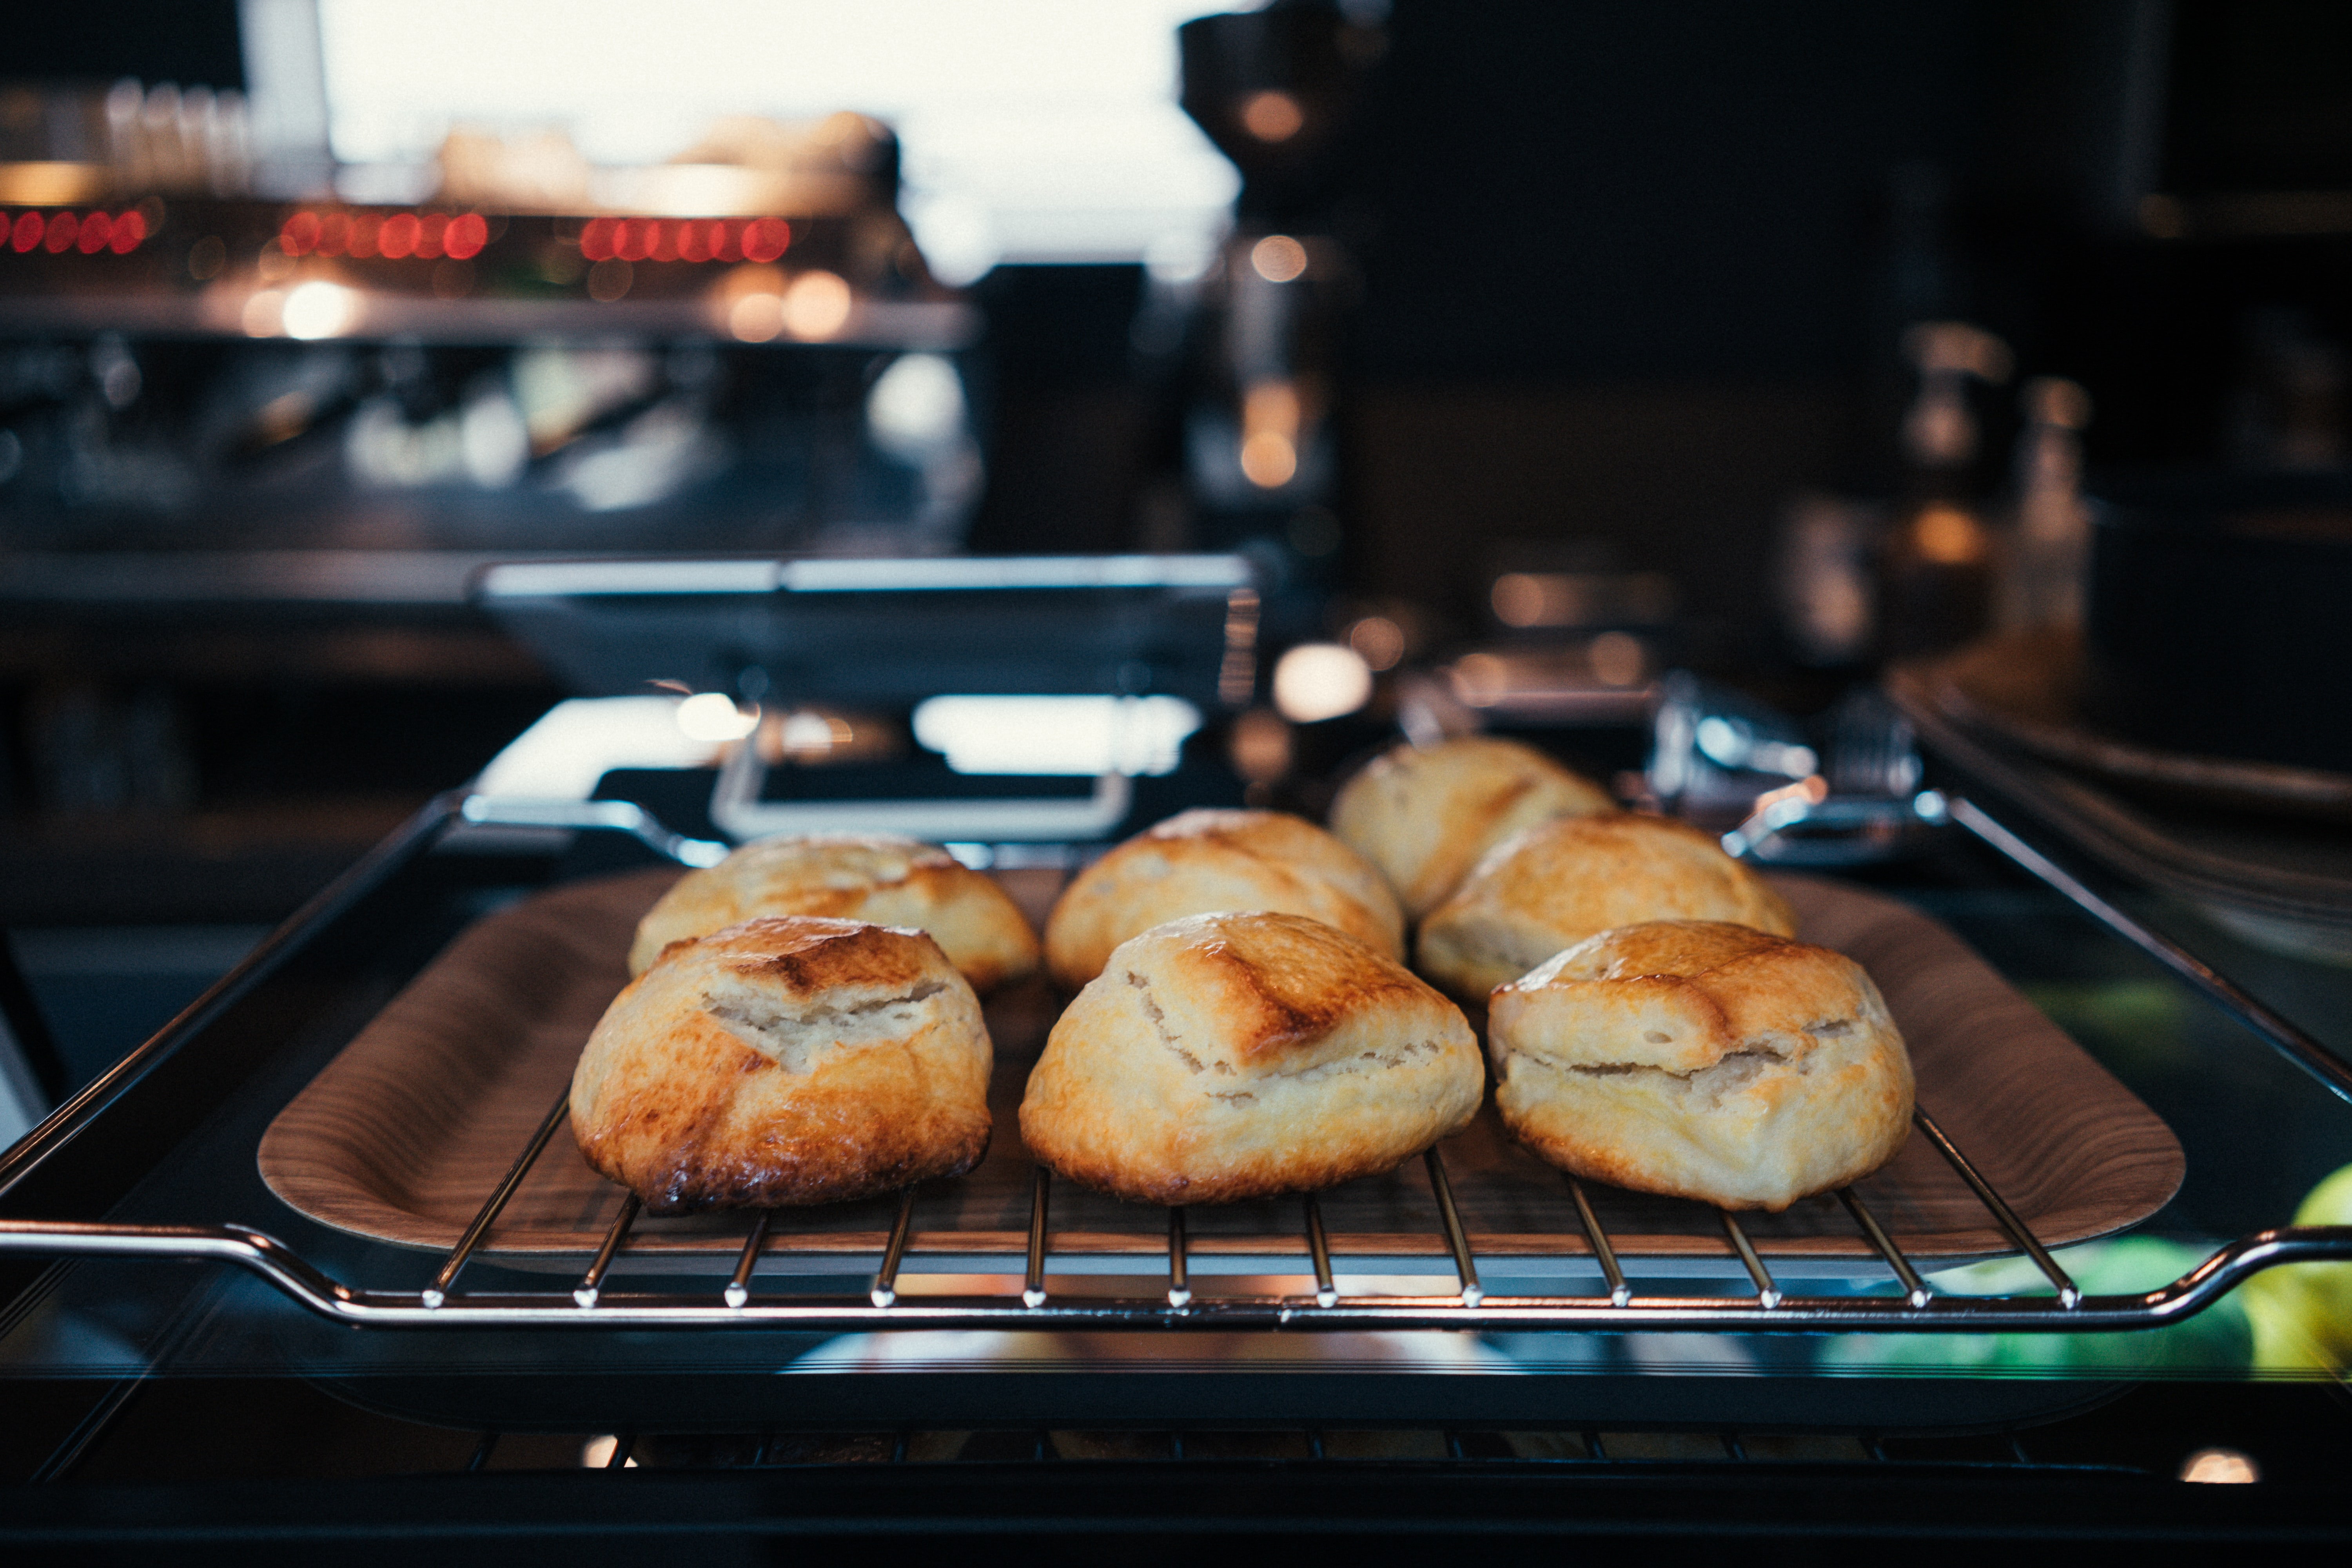 seven buns on gray steel grill